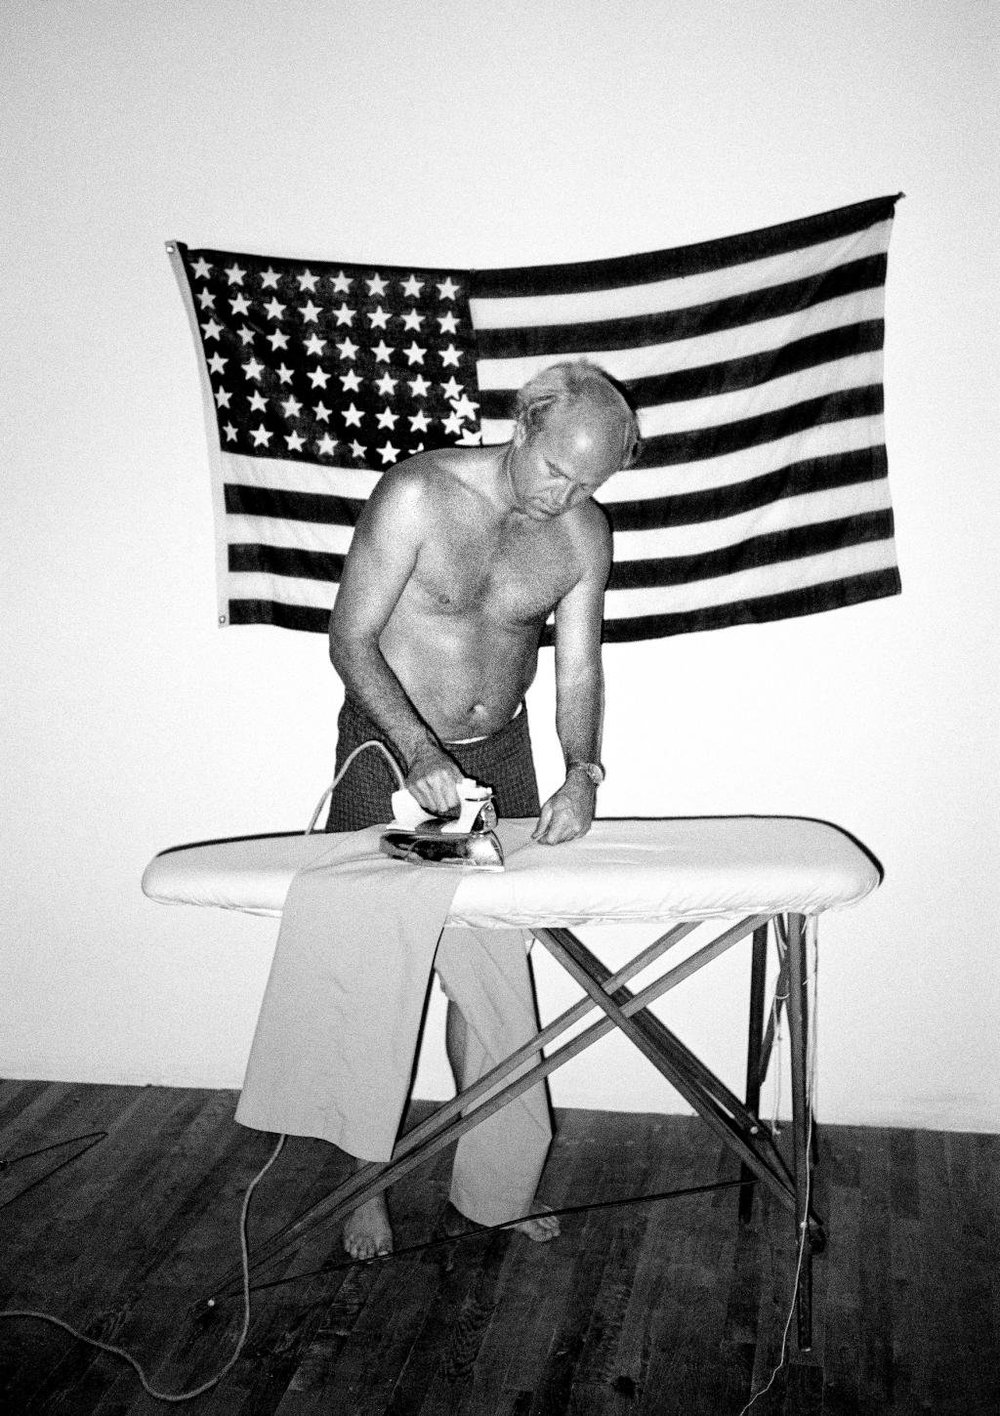 chico_aragao_james_rosenquist_ironing_his_trousers_1024x768.jpg